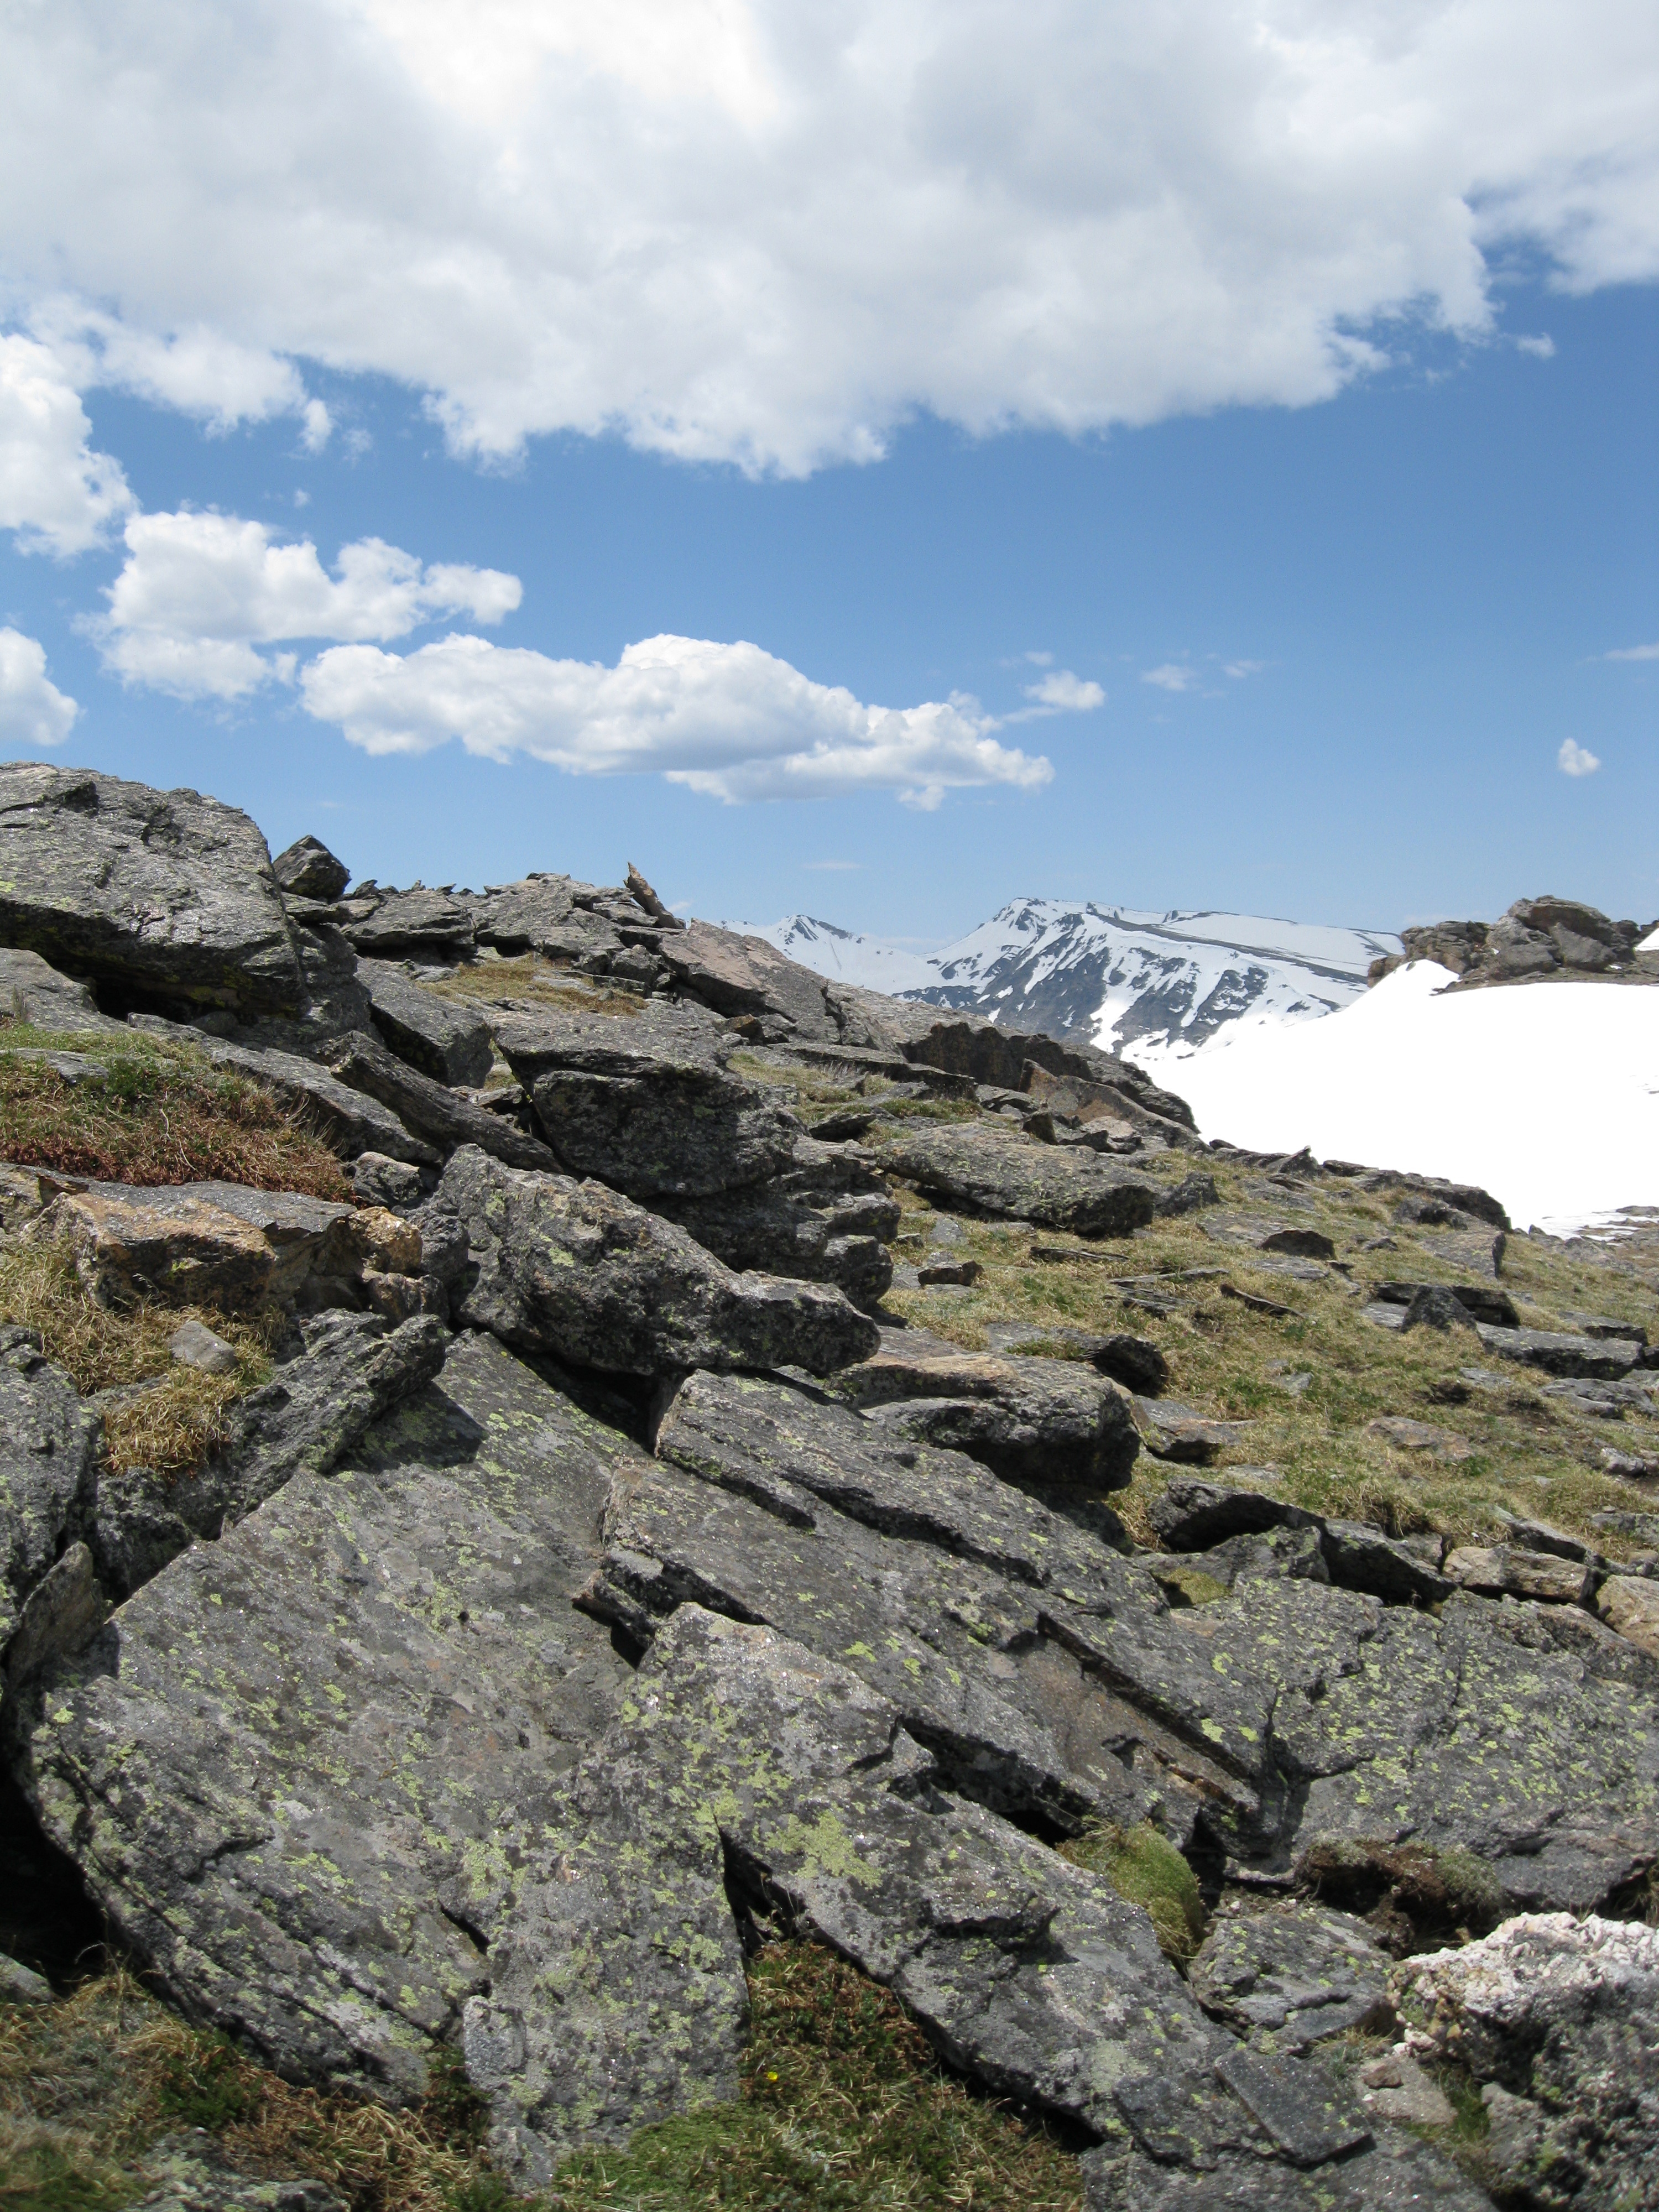 Rocky mountain national park rebecca heisman you reach these high places via trail ridge road which winds up and then down again from one end of rocky mountain national park sciox Image collections